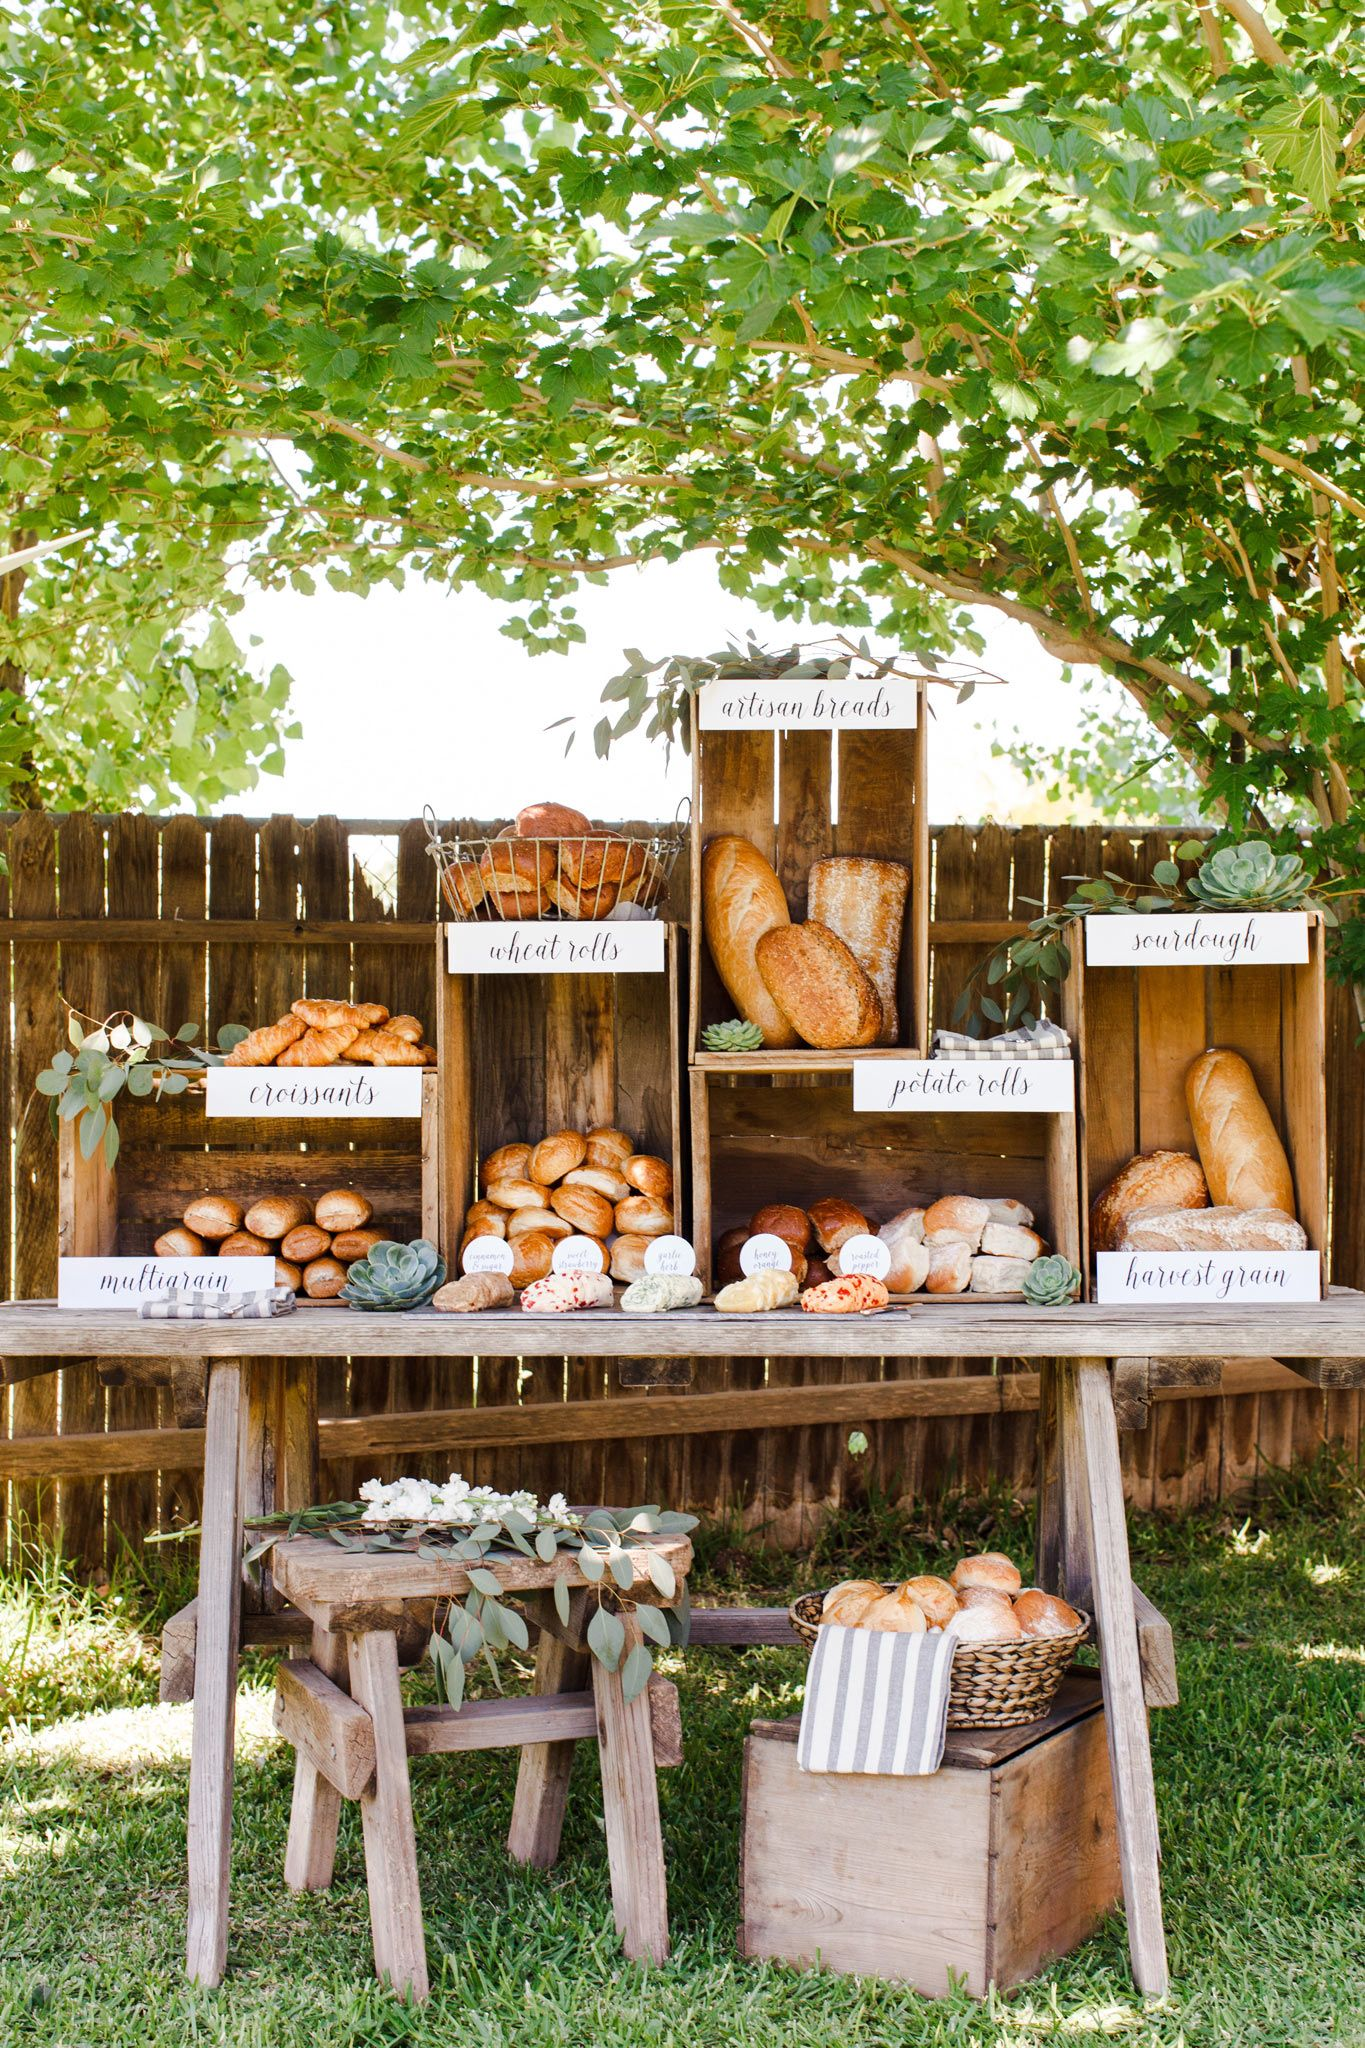 7 Unique Ways to Display Your Wedding Food | Food & Drinks ...